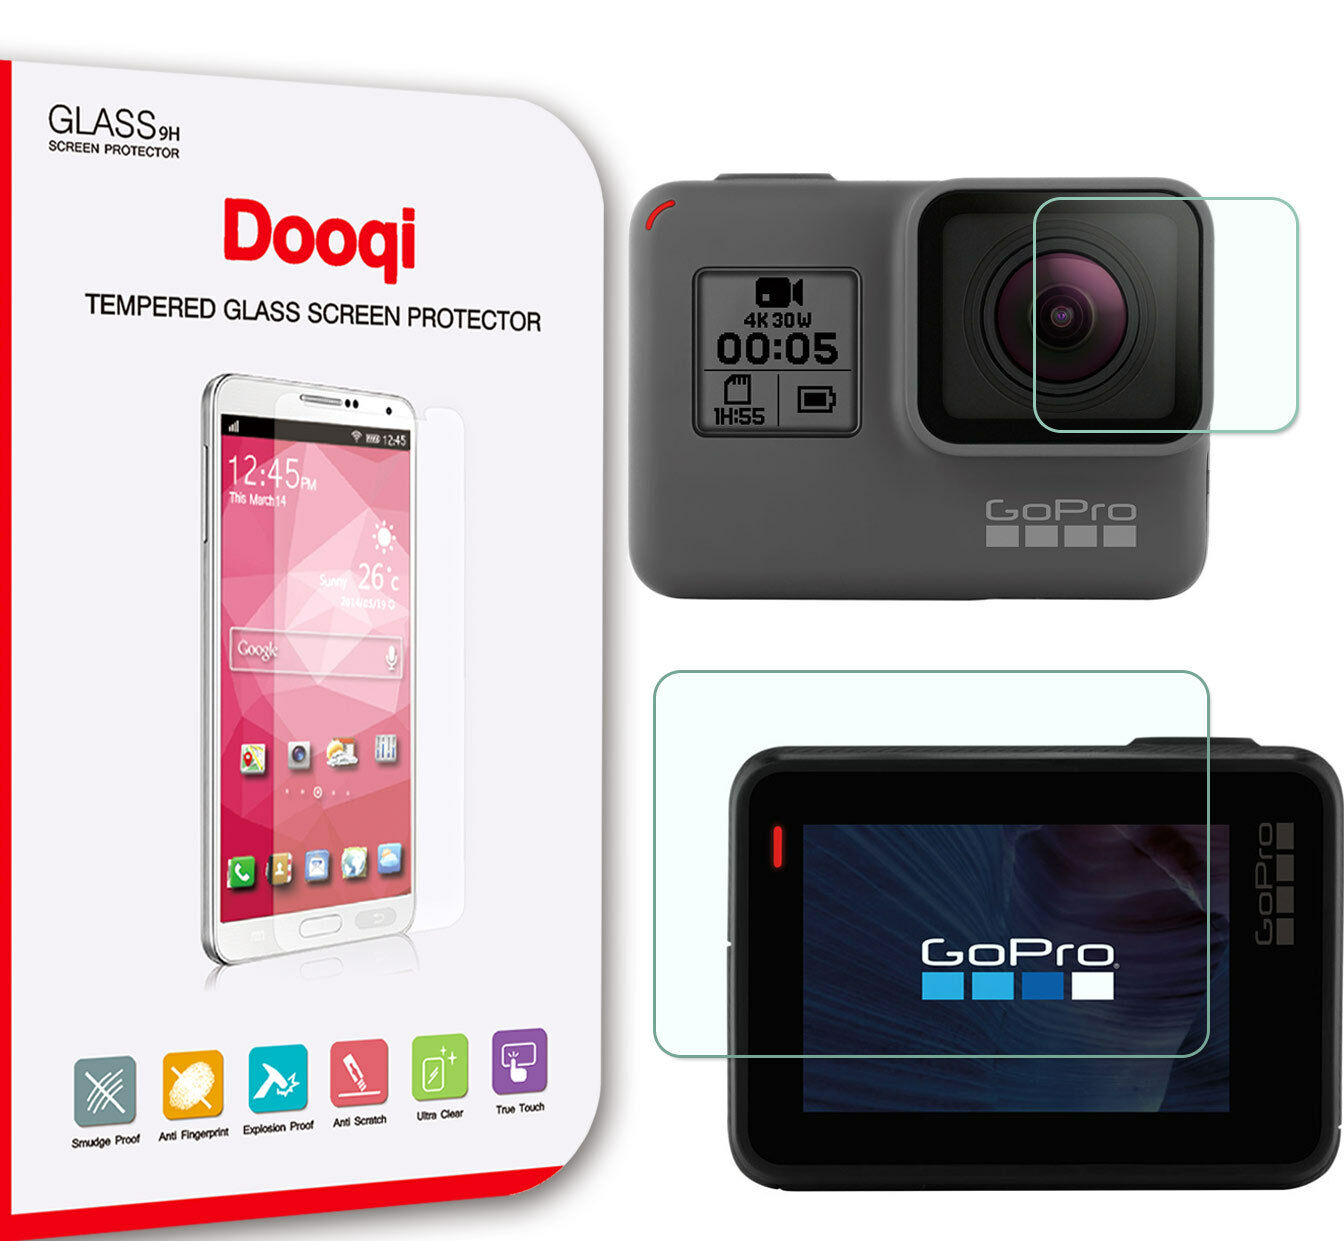 Dooqi Tempered Glass Screen Protector for GoPro Hero 5 Scree